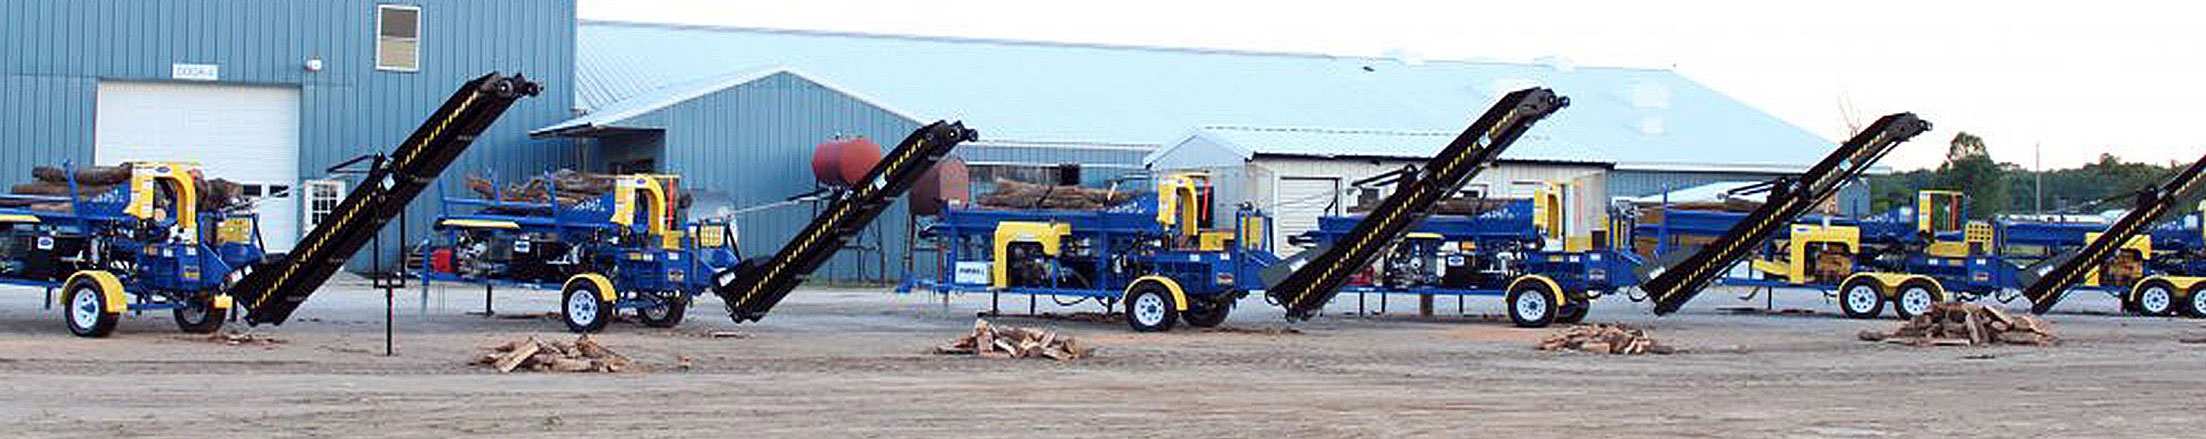 Firewood processor machines in front of DYNA